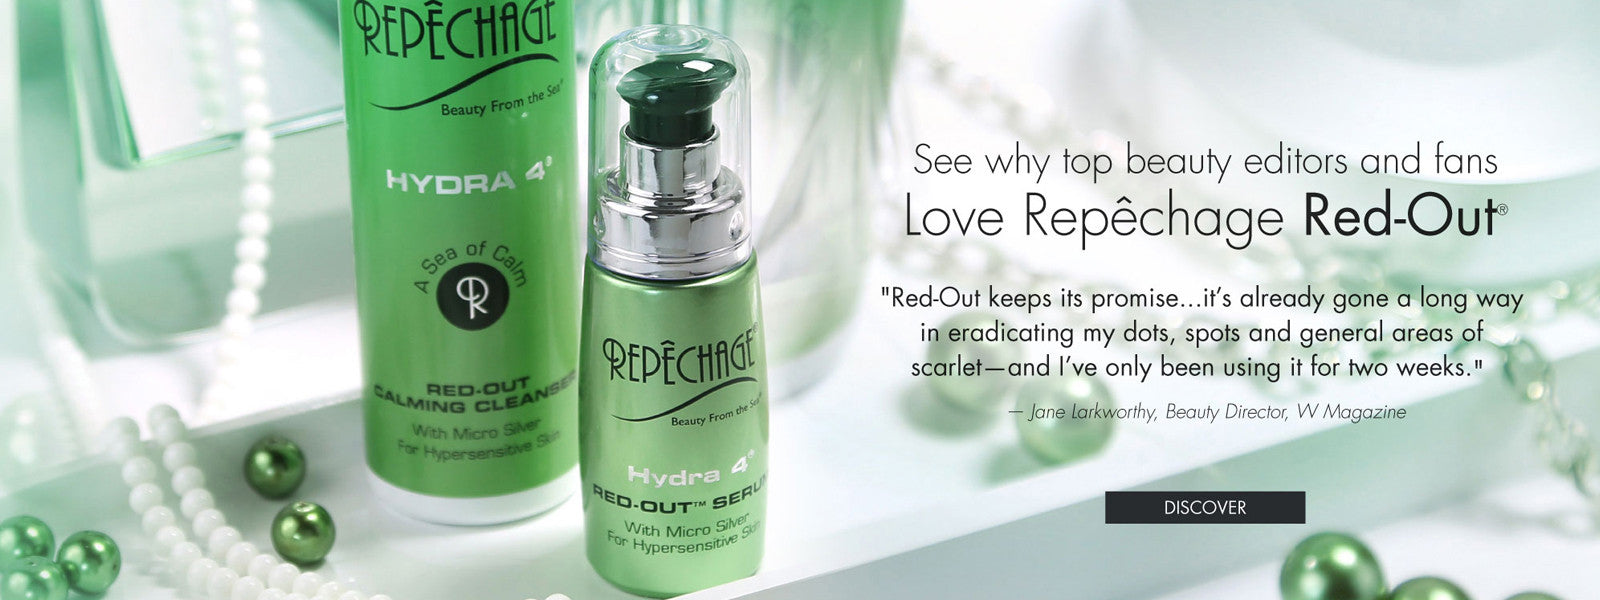 See why top beauty editors and fans Love Repechage Red Out!